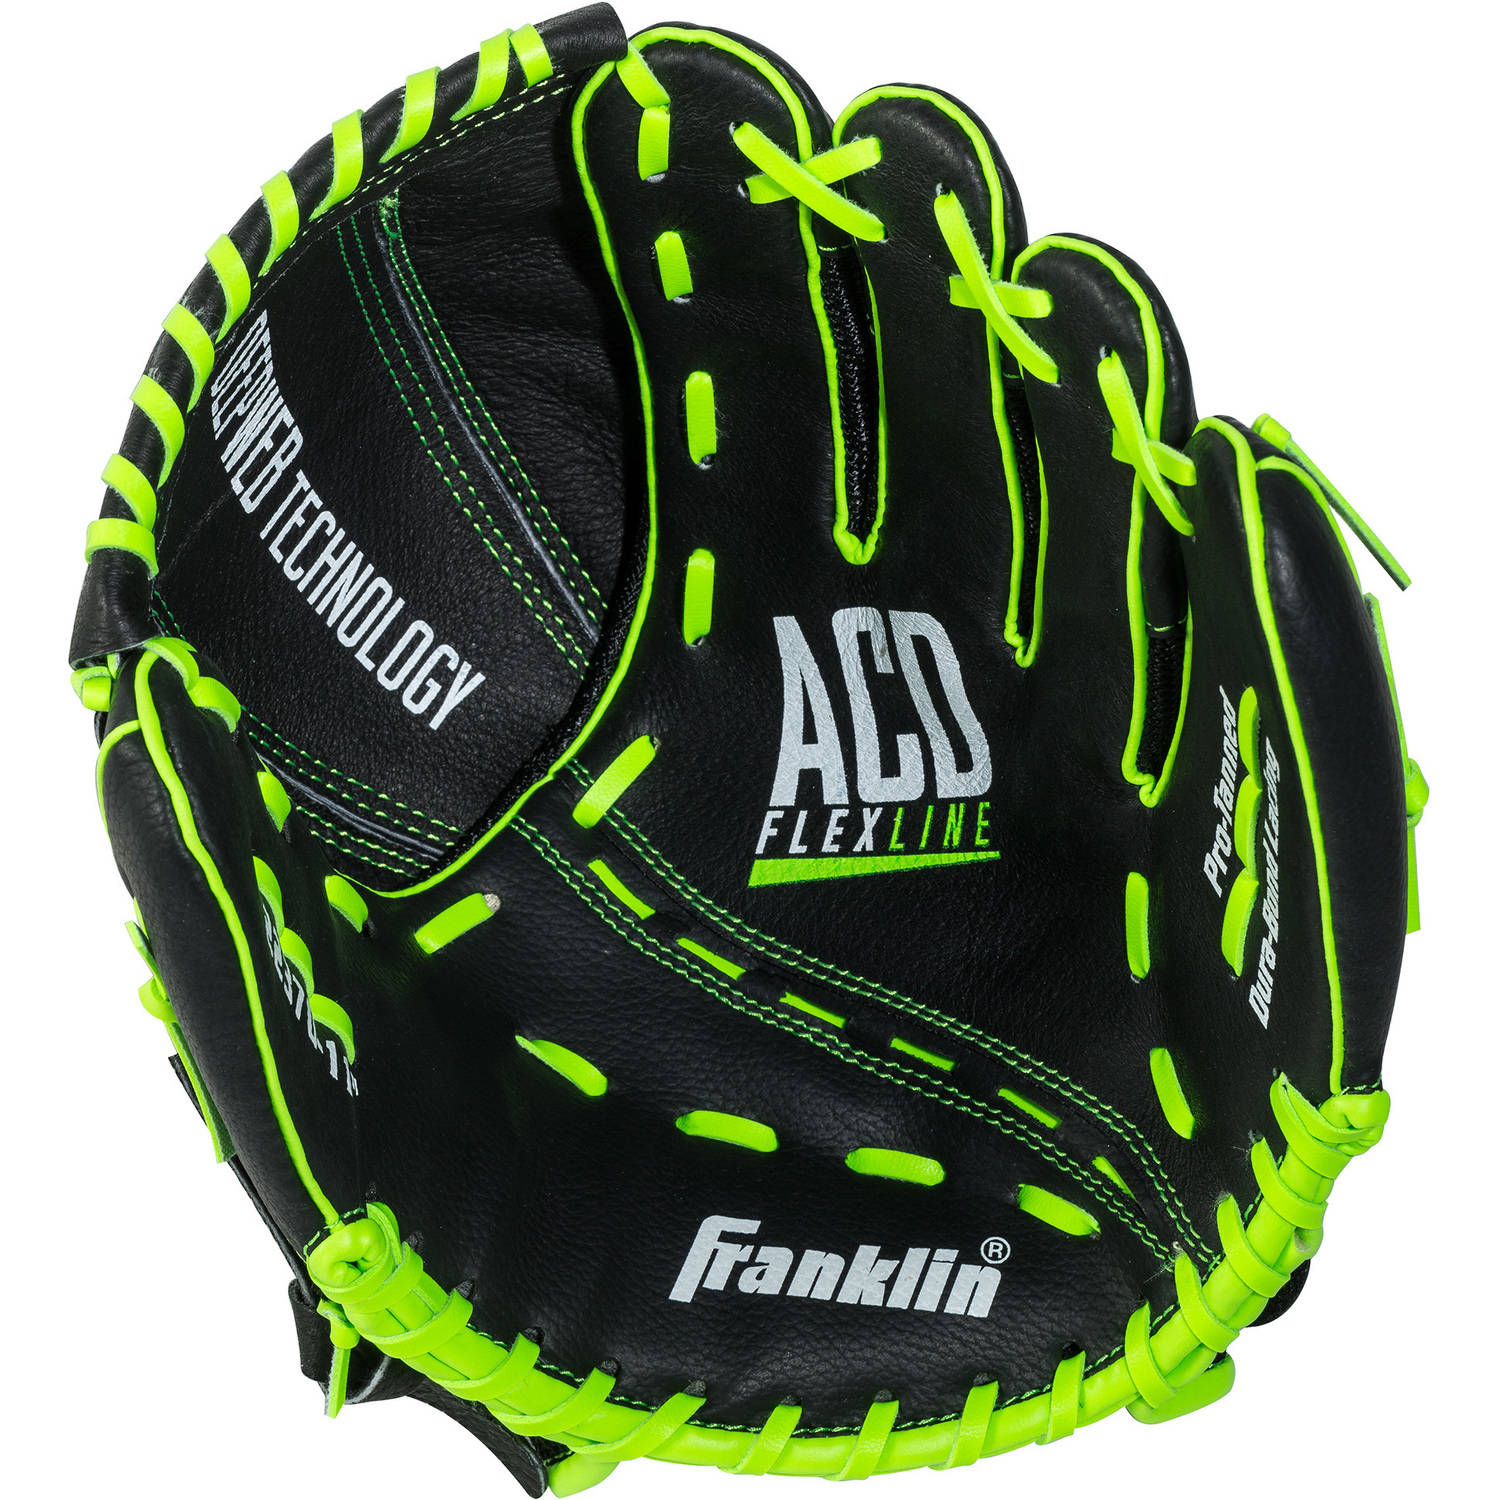 Franklin Sports ACD Flexline Baseball Glove, Right-Handed Thrower by Franklin Sports